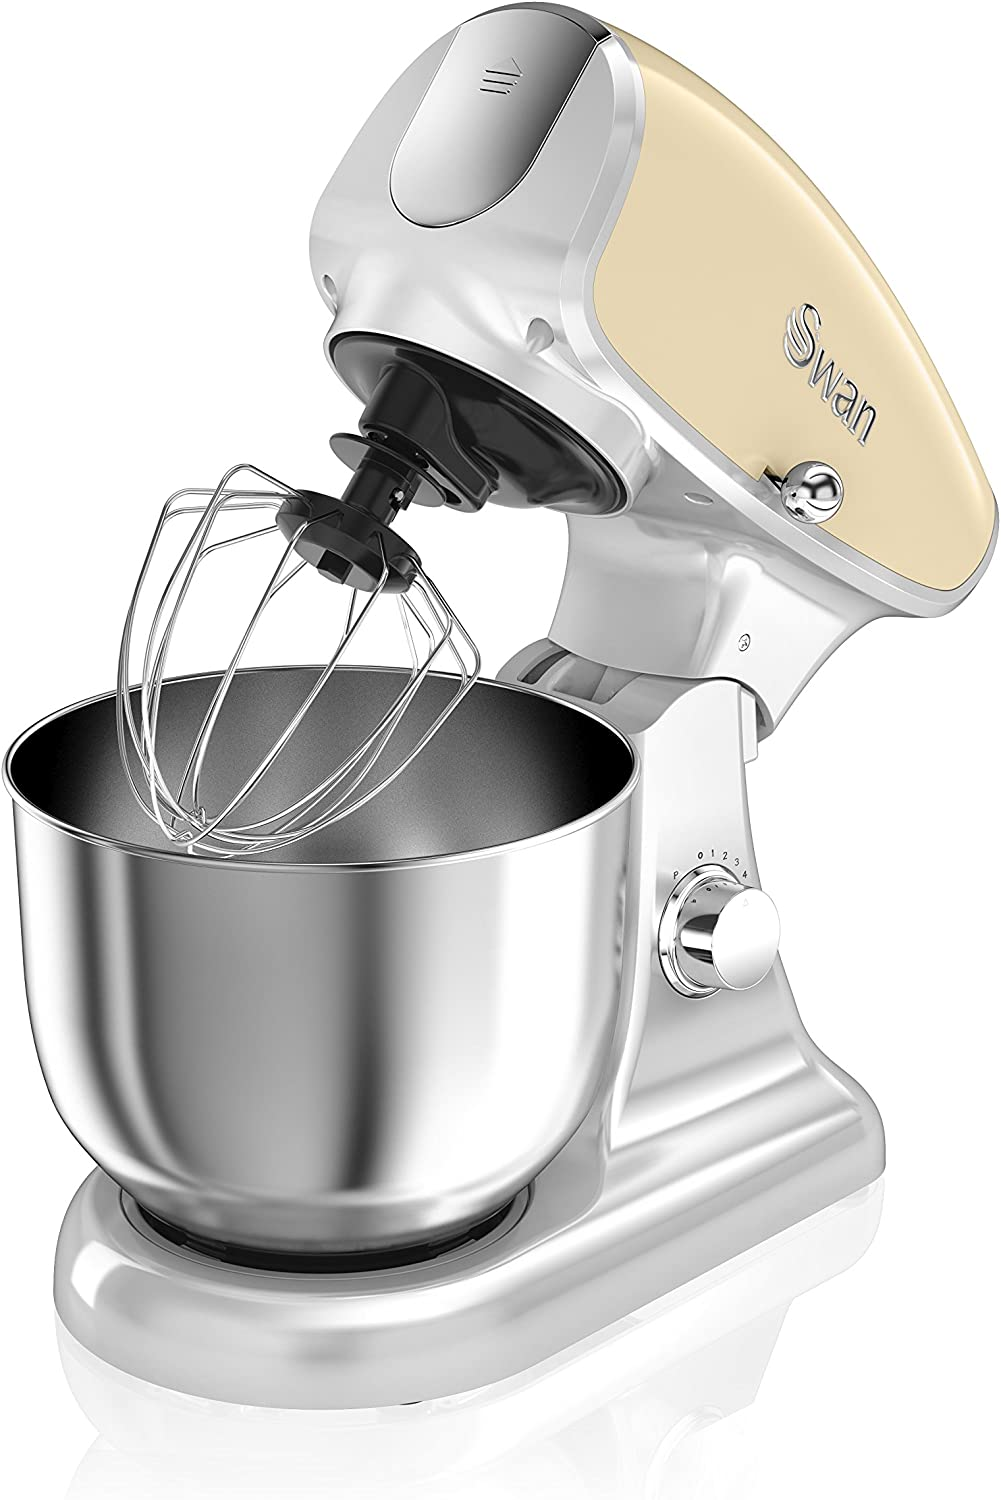 Swan SP33010CN Retro Die-Cast Stand Mixer, 4.5 Litre Stainless Steel Mixing Bowl, 1200 W, 8 Variable Speed Settings, Low noise, Cream – Includes Splash Guard, Dough Hook, Beater & Whisk